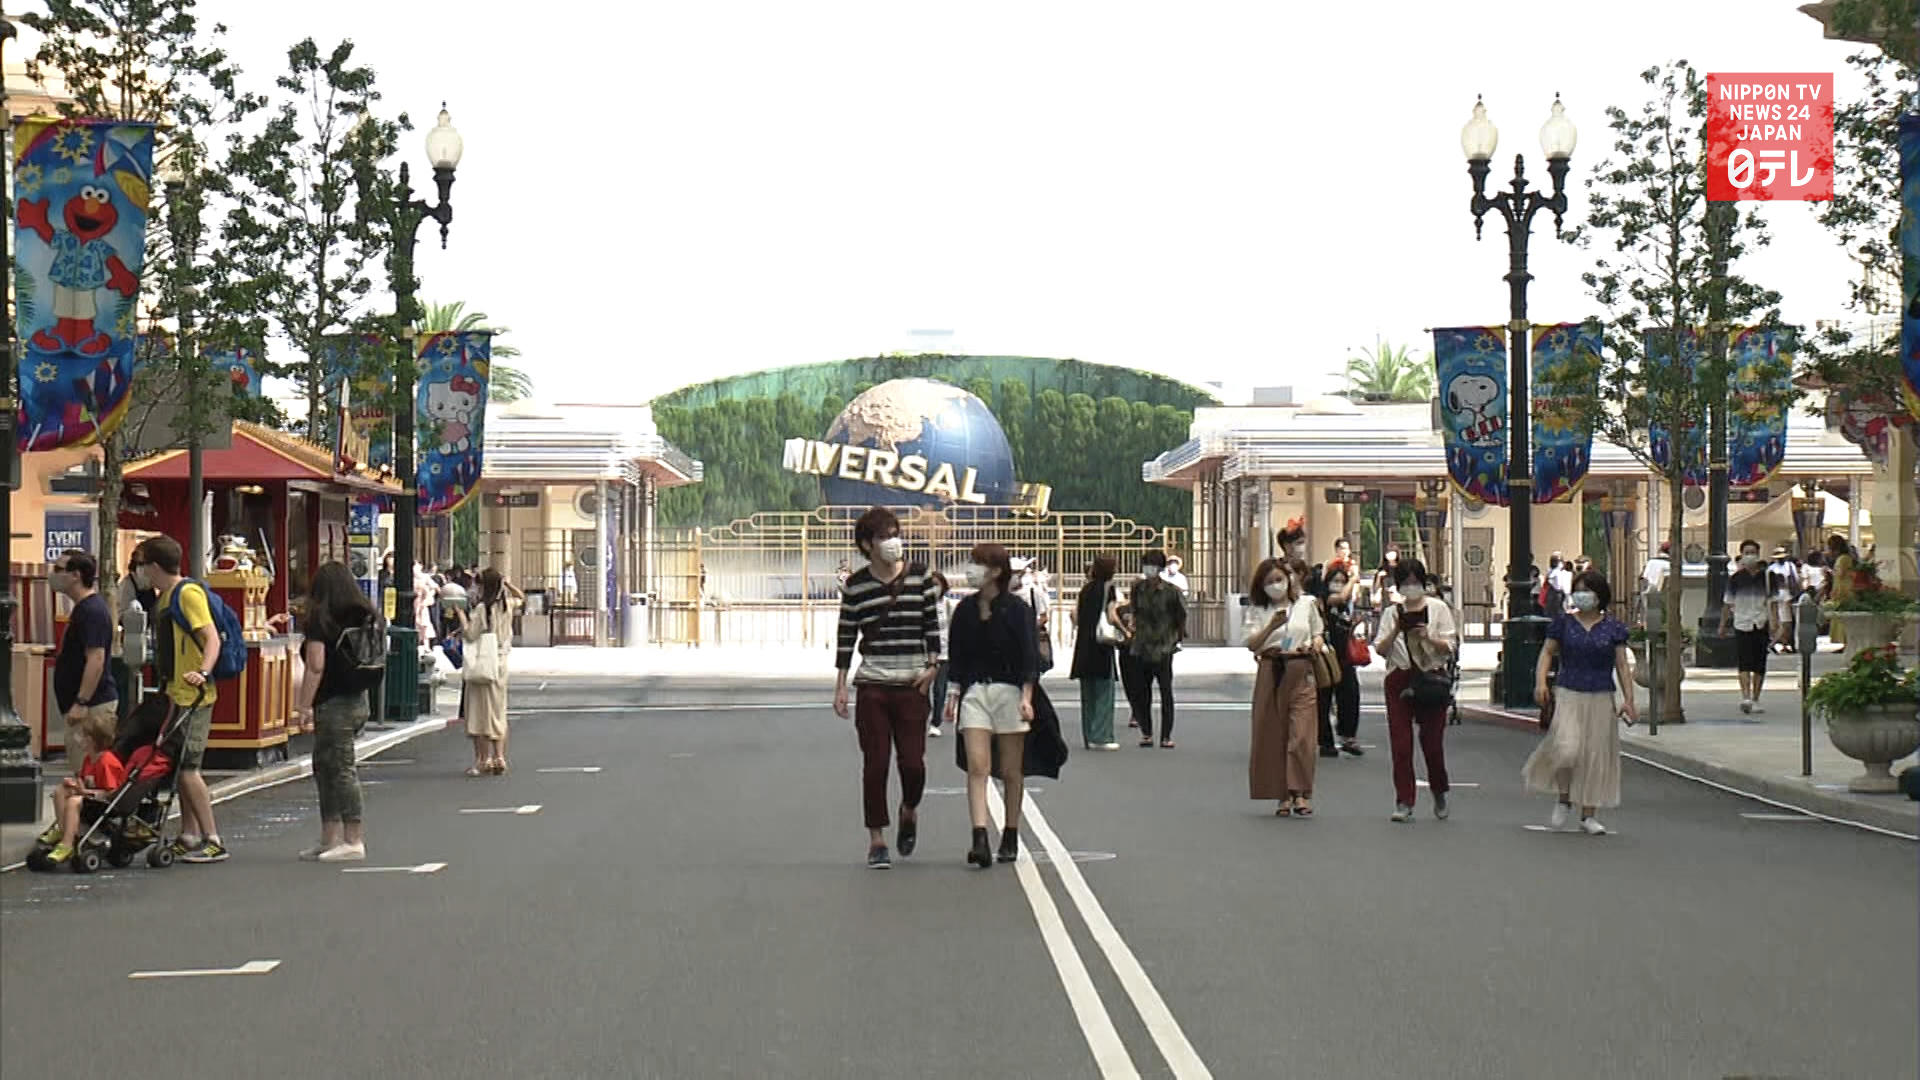 Universal Studios Japan opens door to visitors from across country